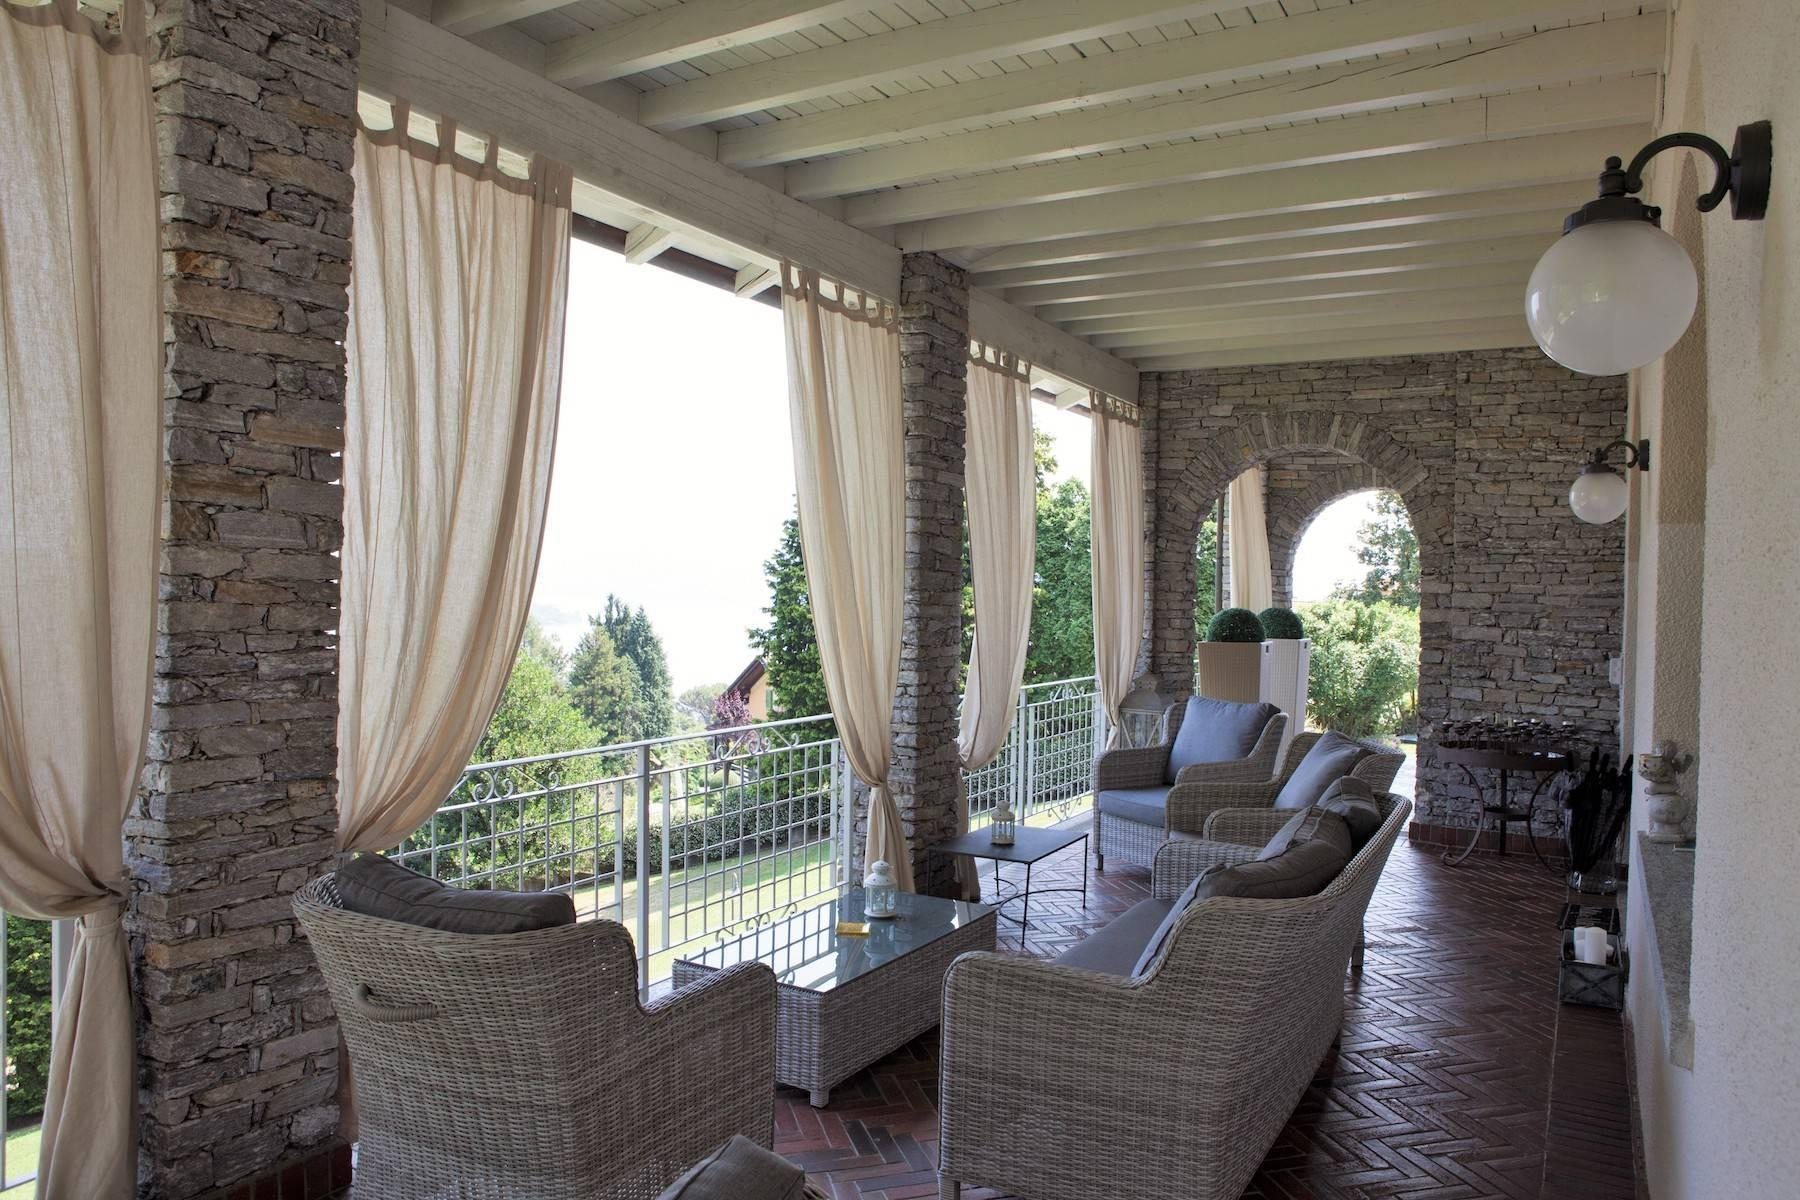 Enchanting Villa with breathtaking view on Lake Maggiore - 3